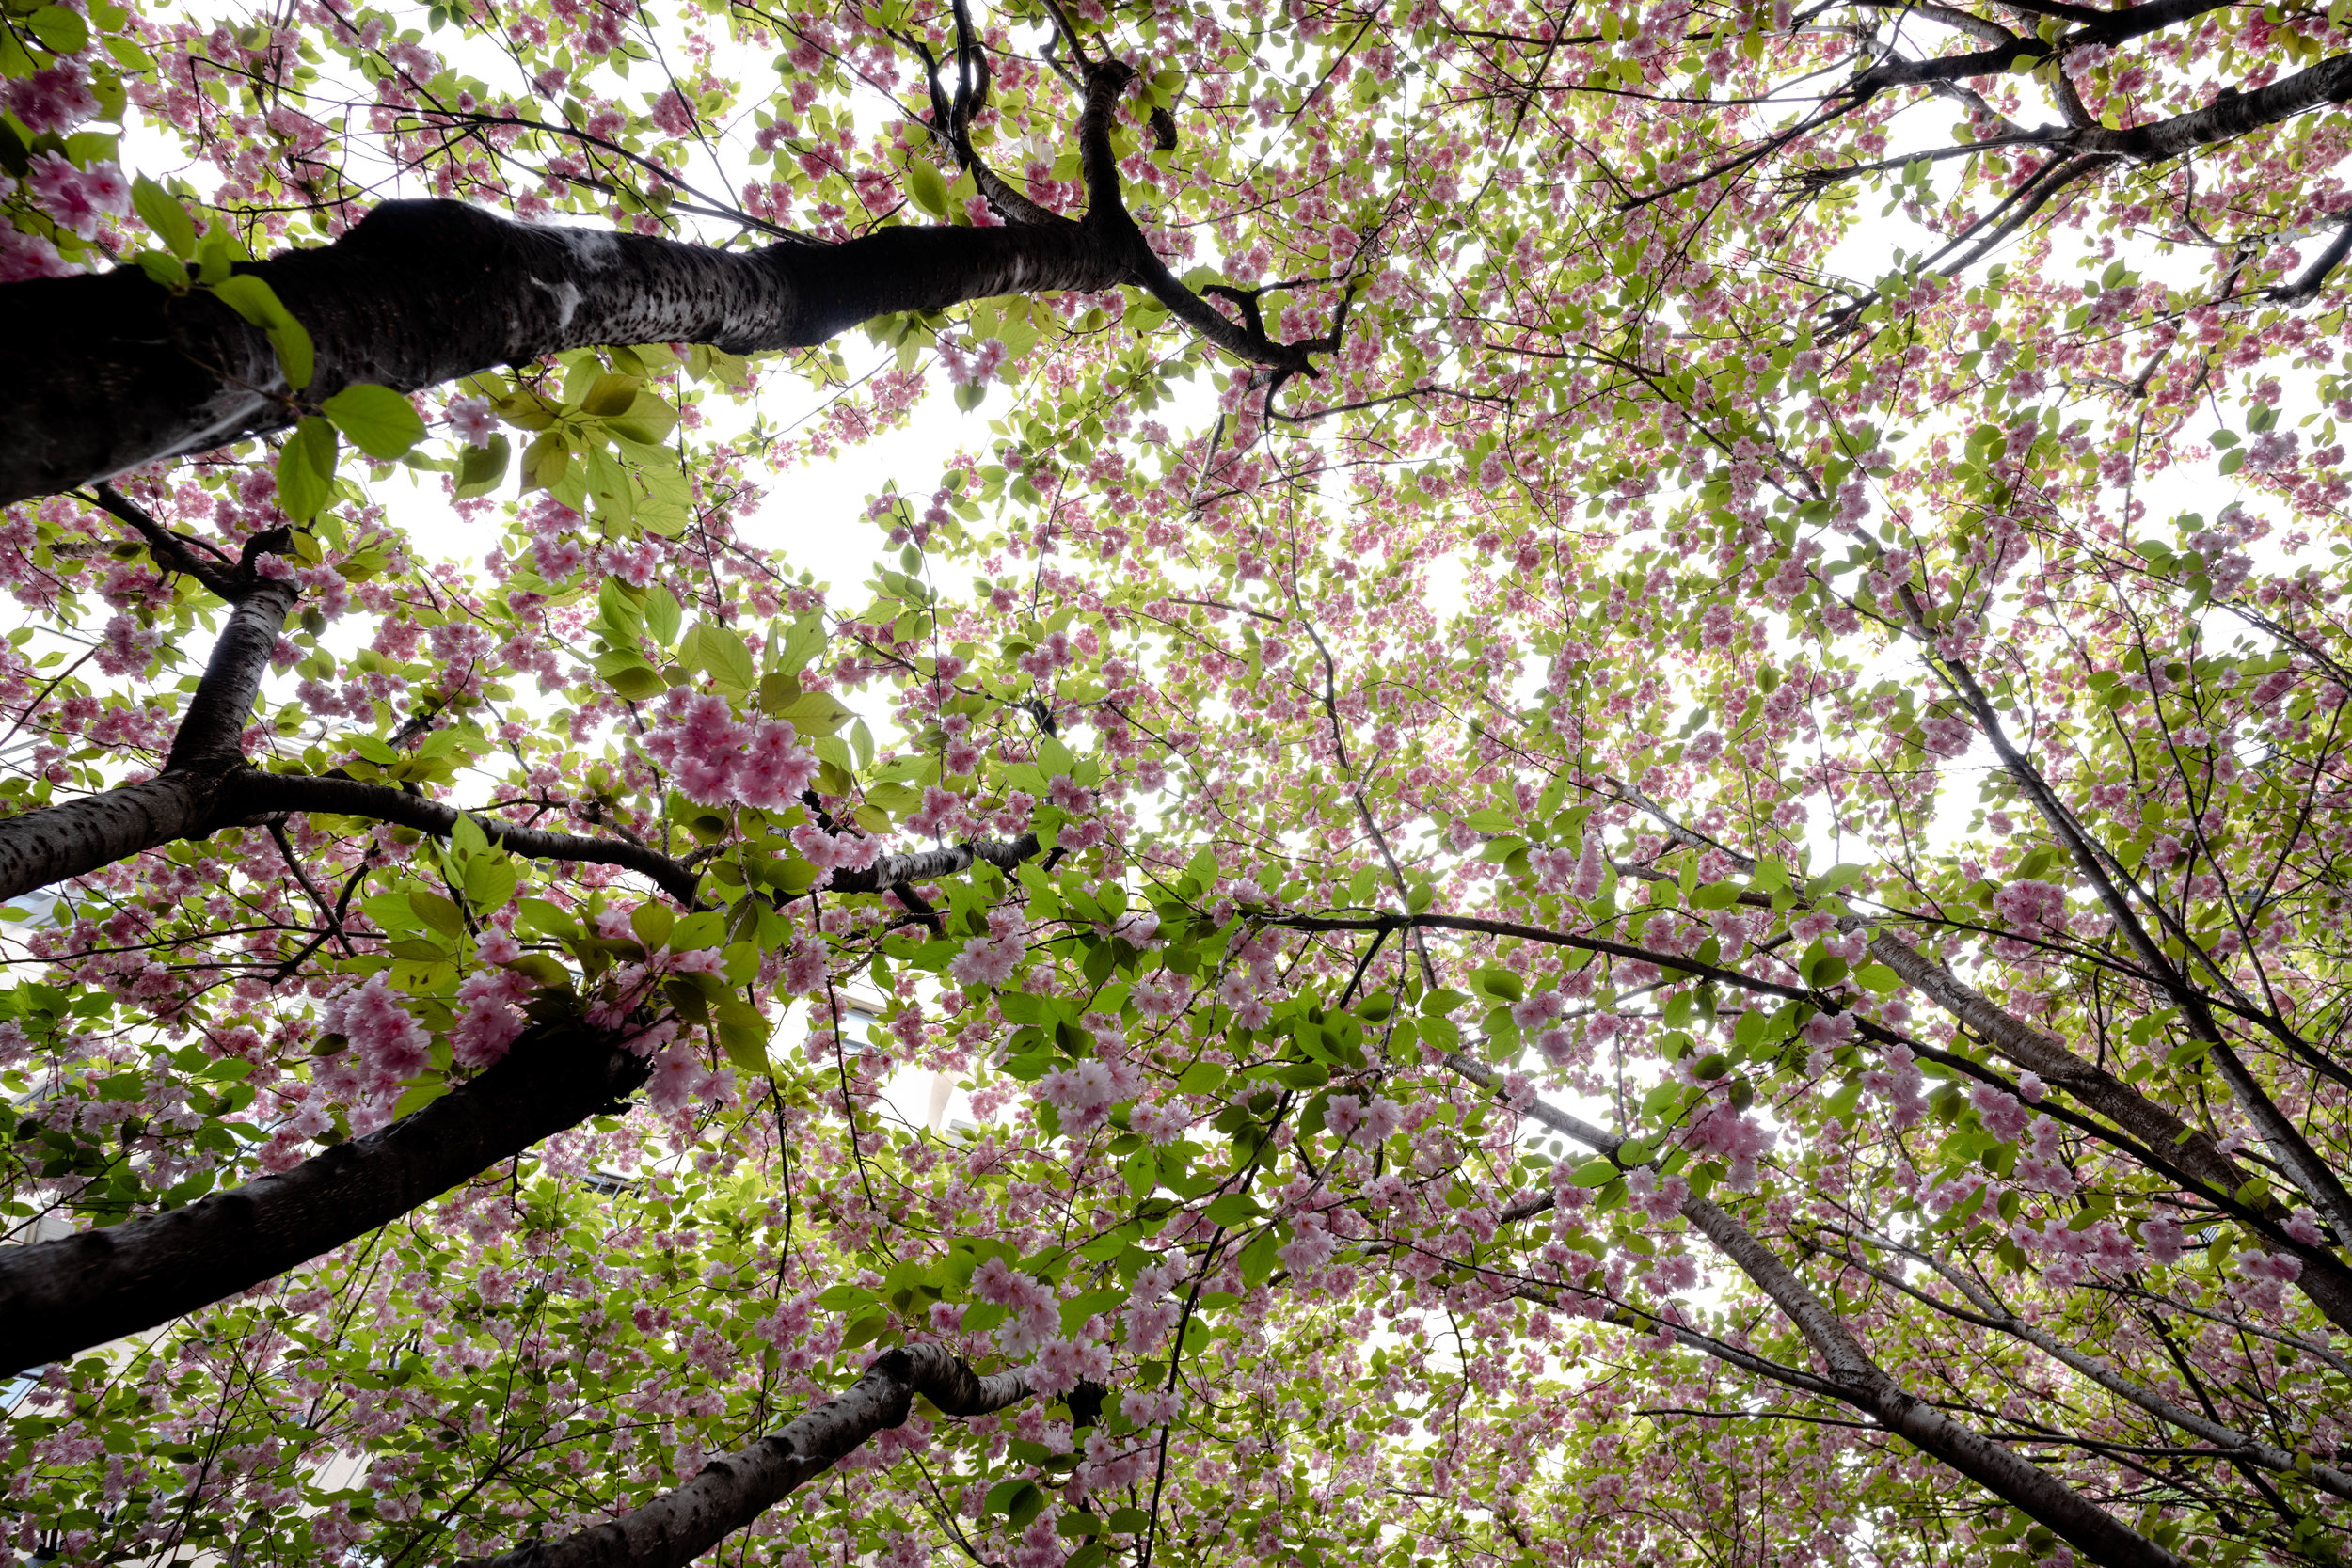 Leica M10 + 18mm f/3.8 Super Elmar-M ASPH - The first of the cherry blossom - as promised. Just so perfect on a spring day.